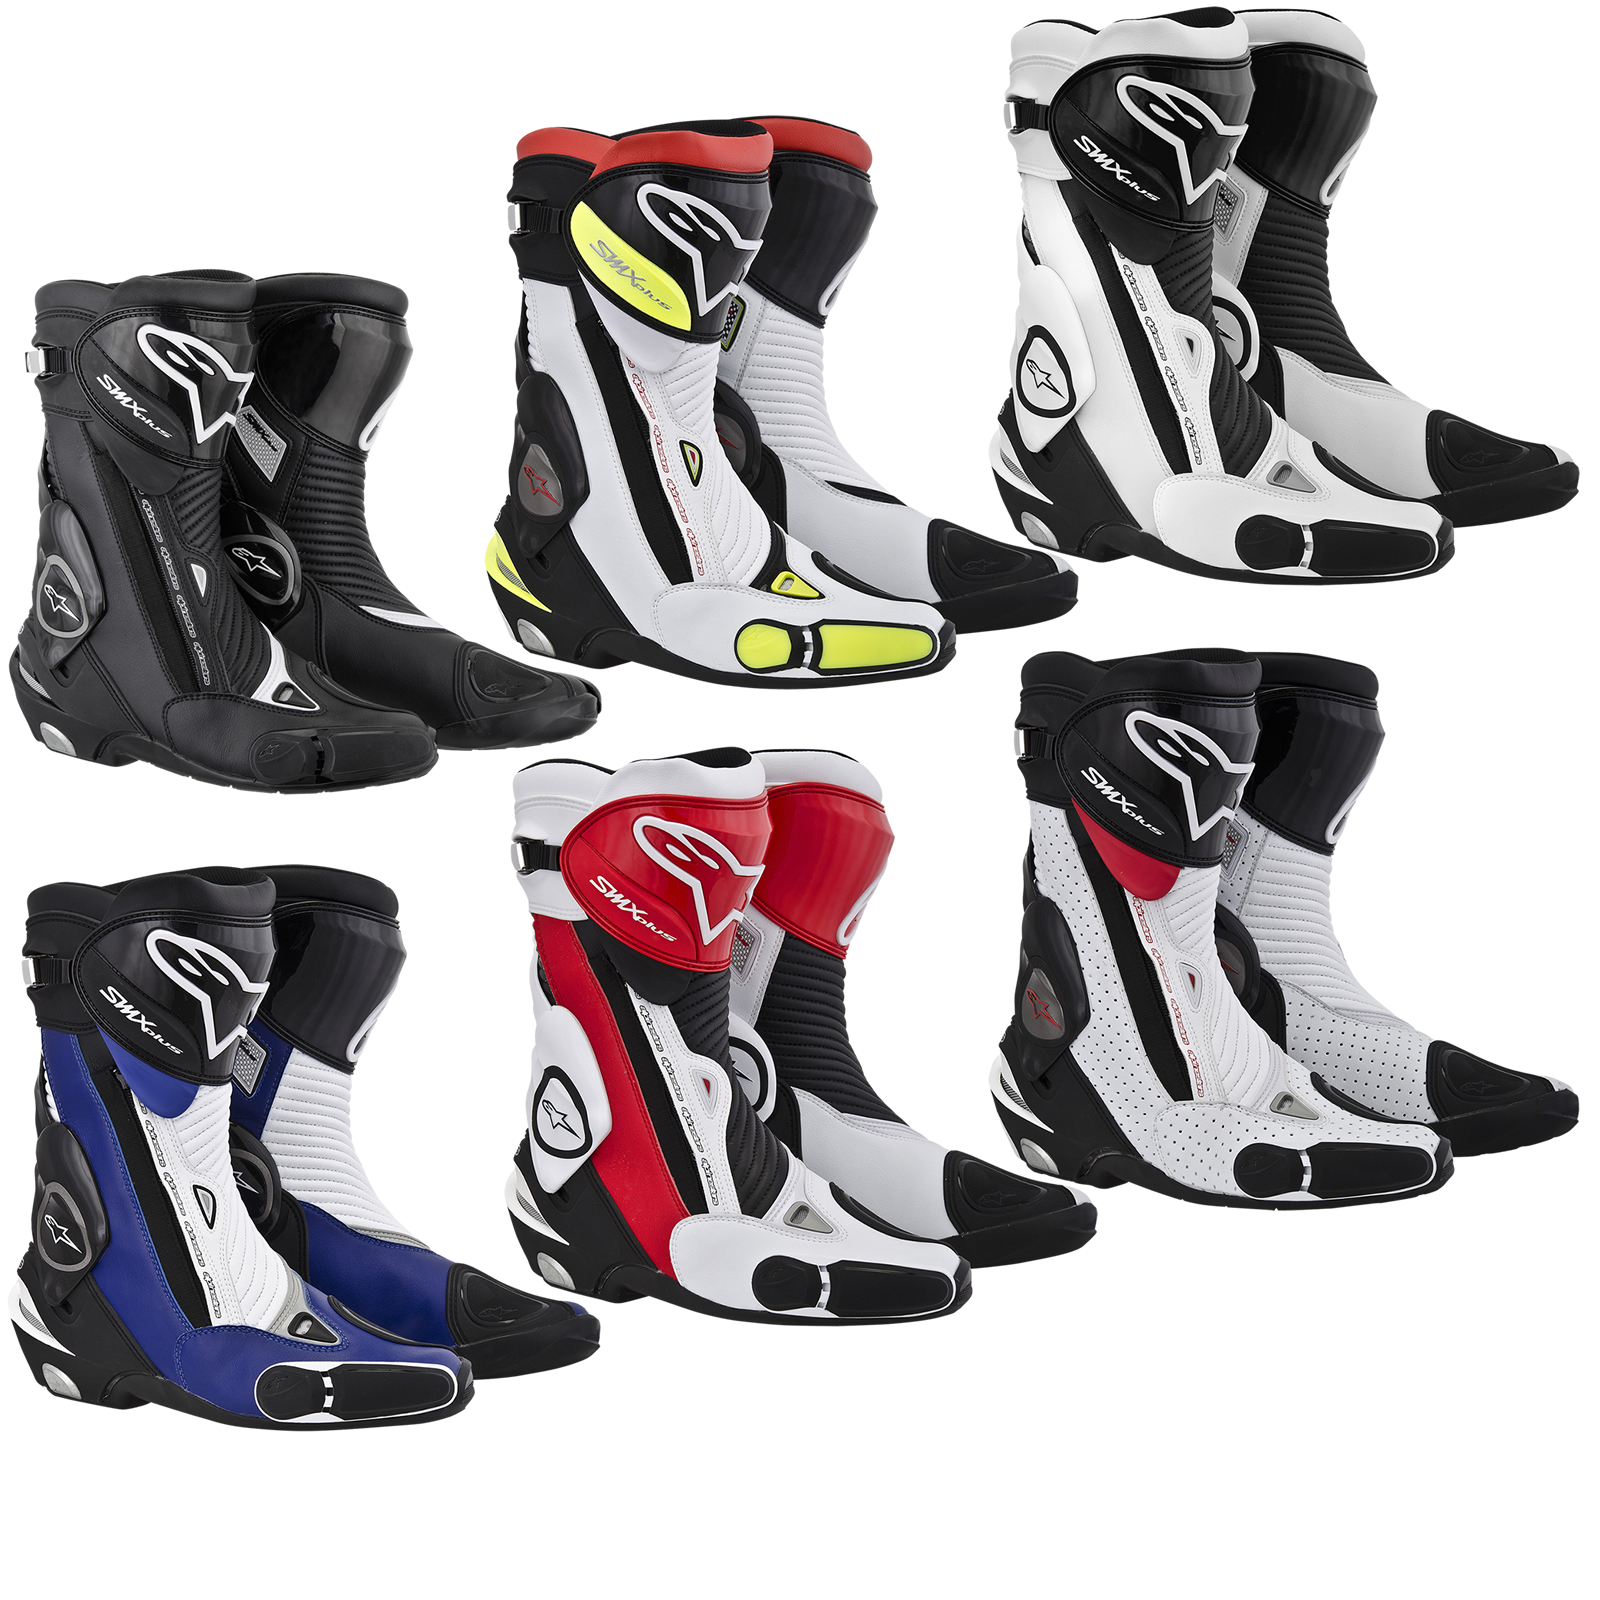 alpinestars smx s mx plus 2013 moto racing moto sports moto bottes ebay. Black Bedroom Furniture Sets. Home Design Ideas